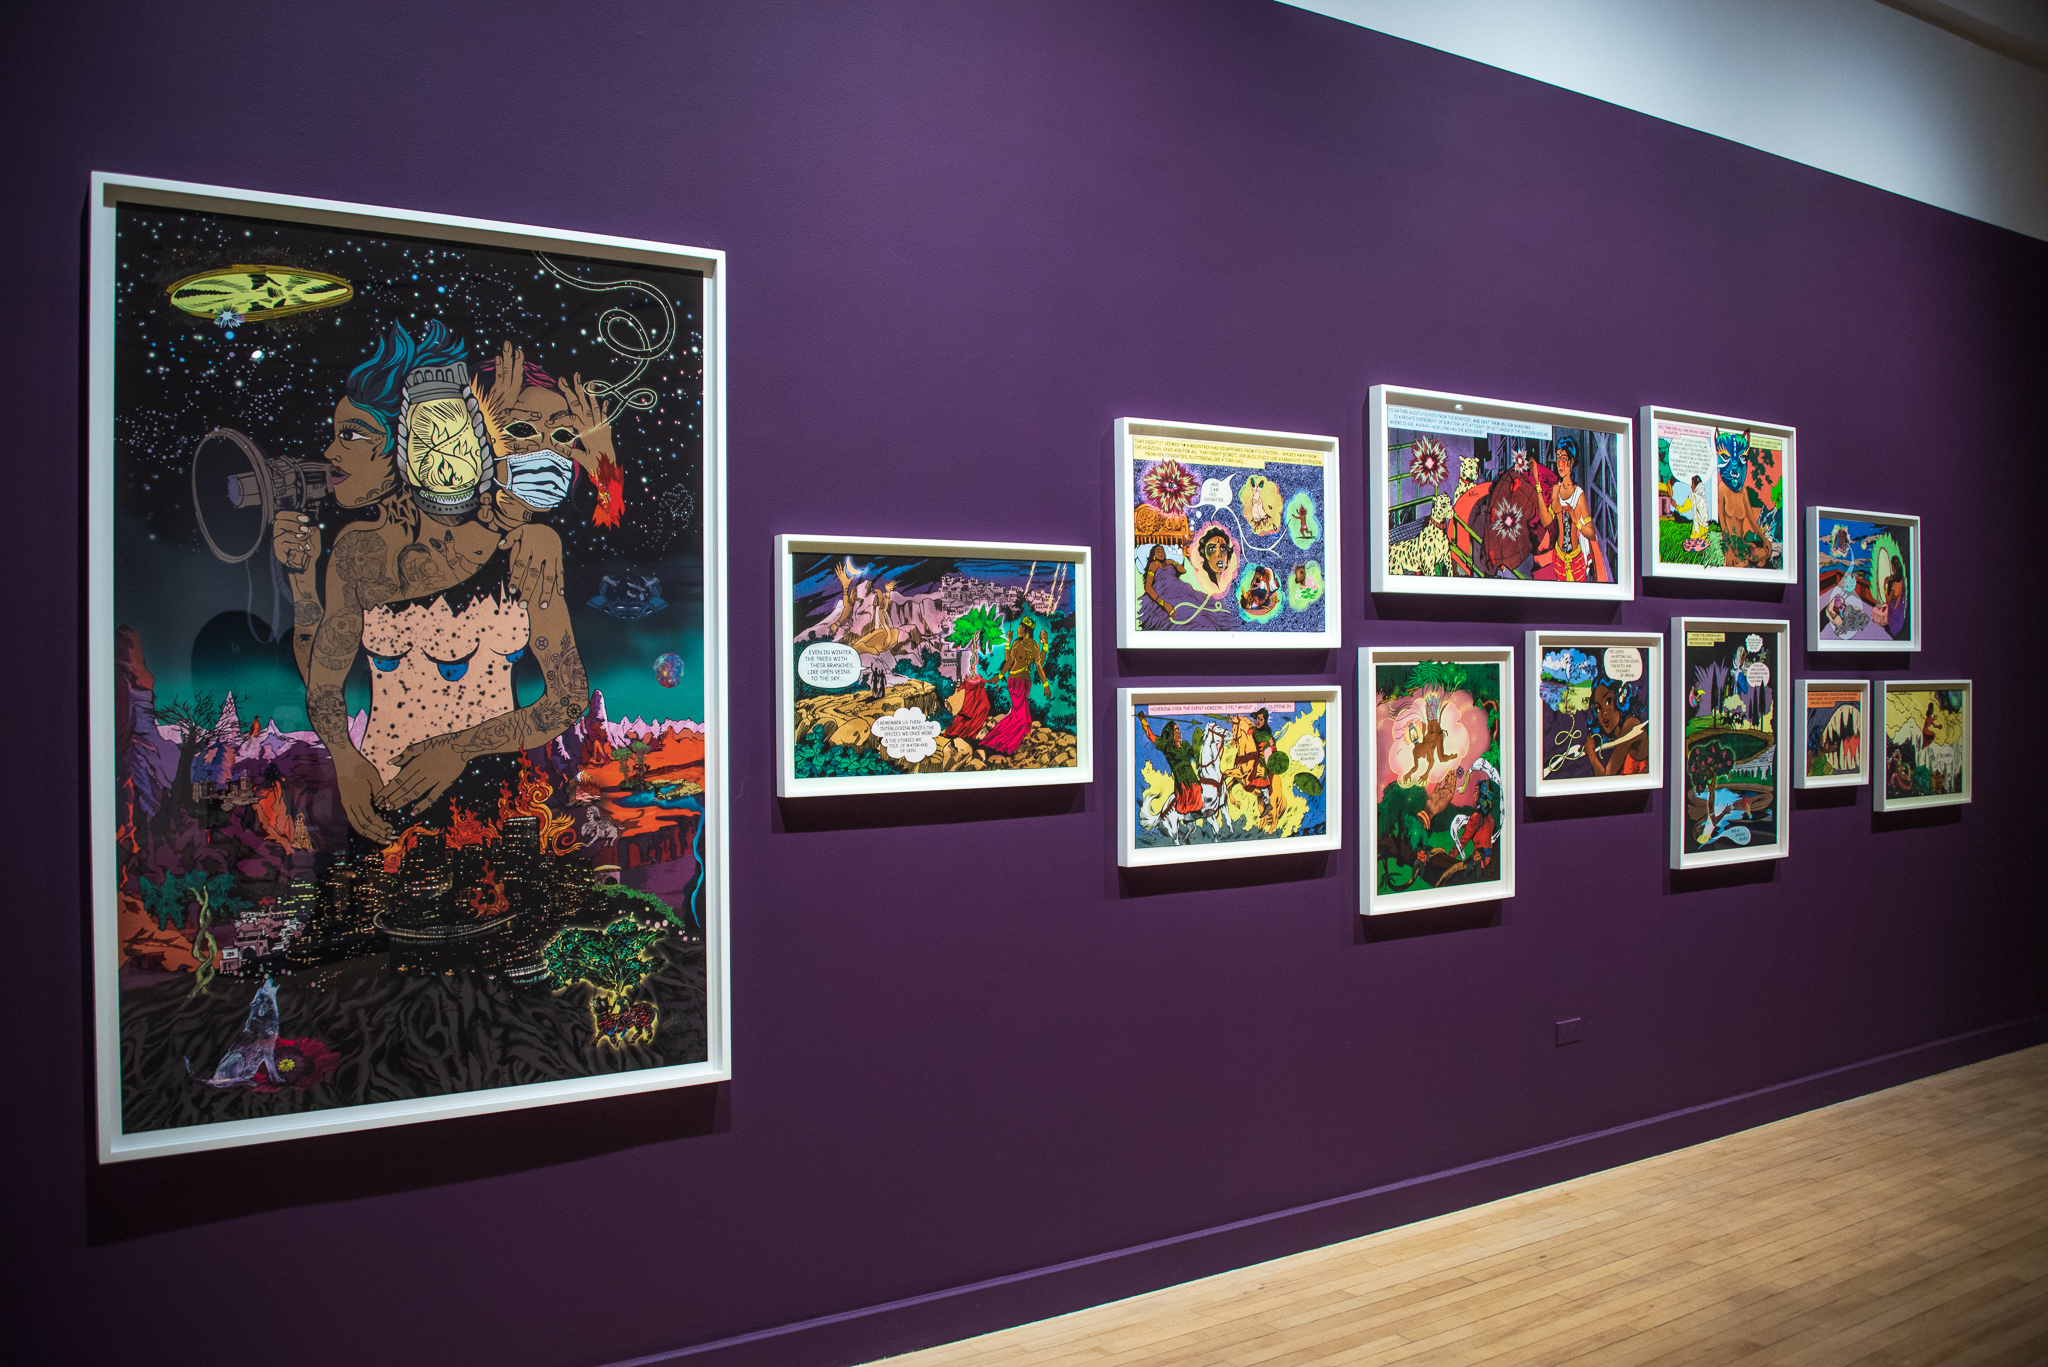 Installation view of Chitra Ganesh's work at the Bronx Museum.